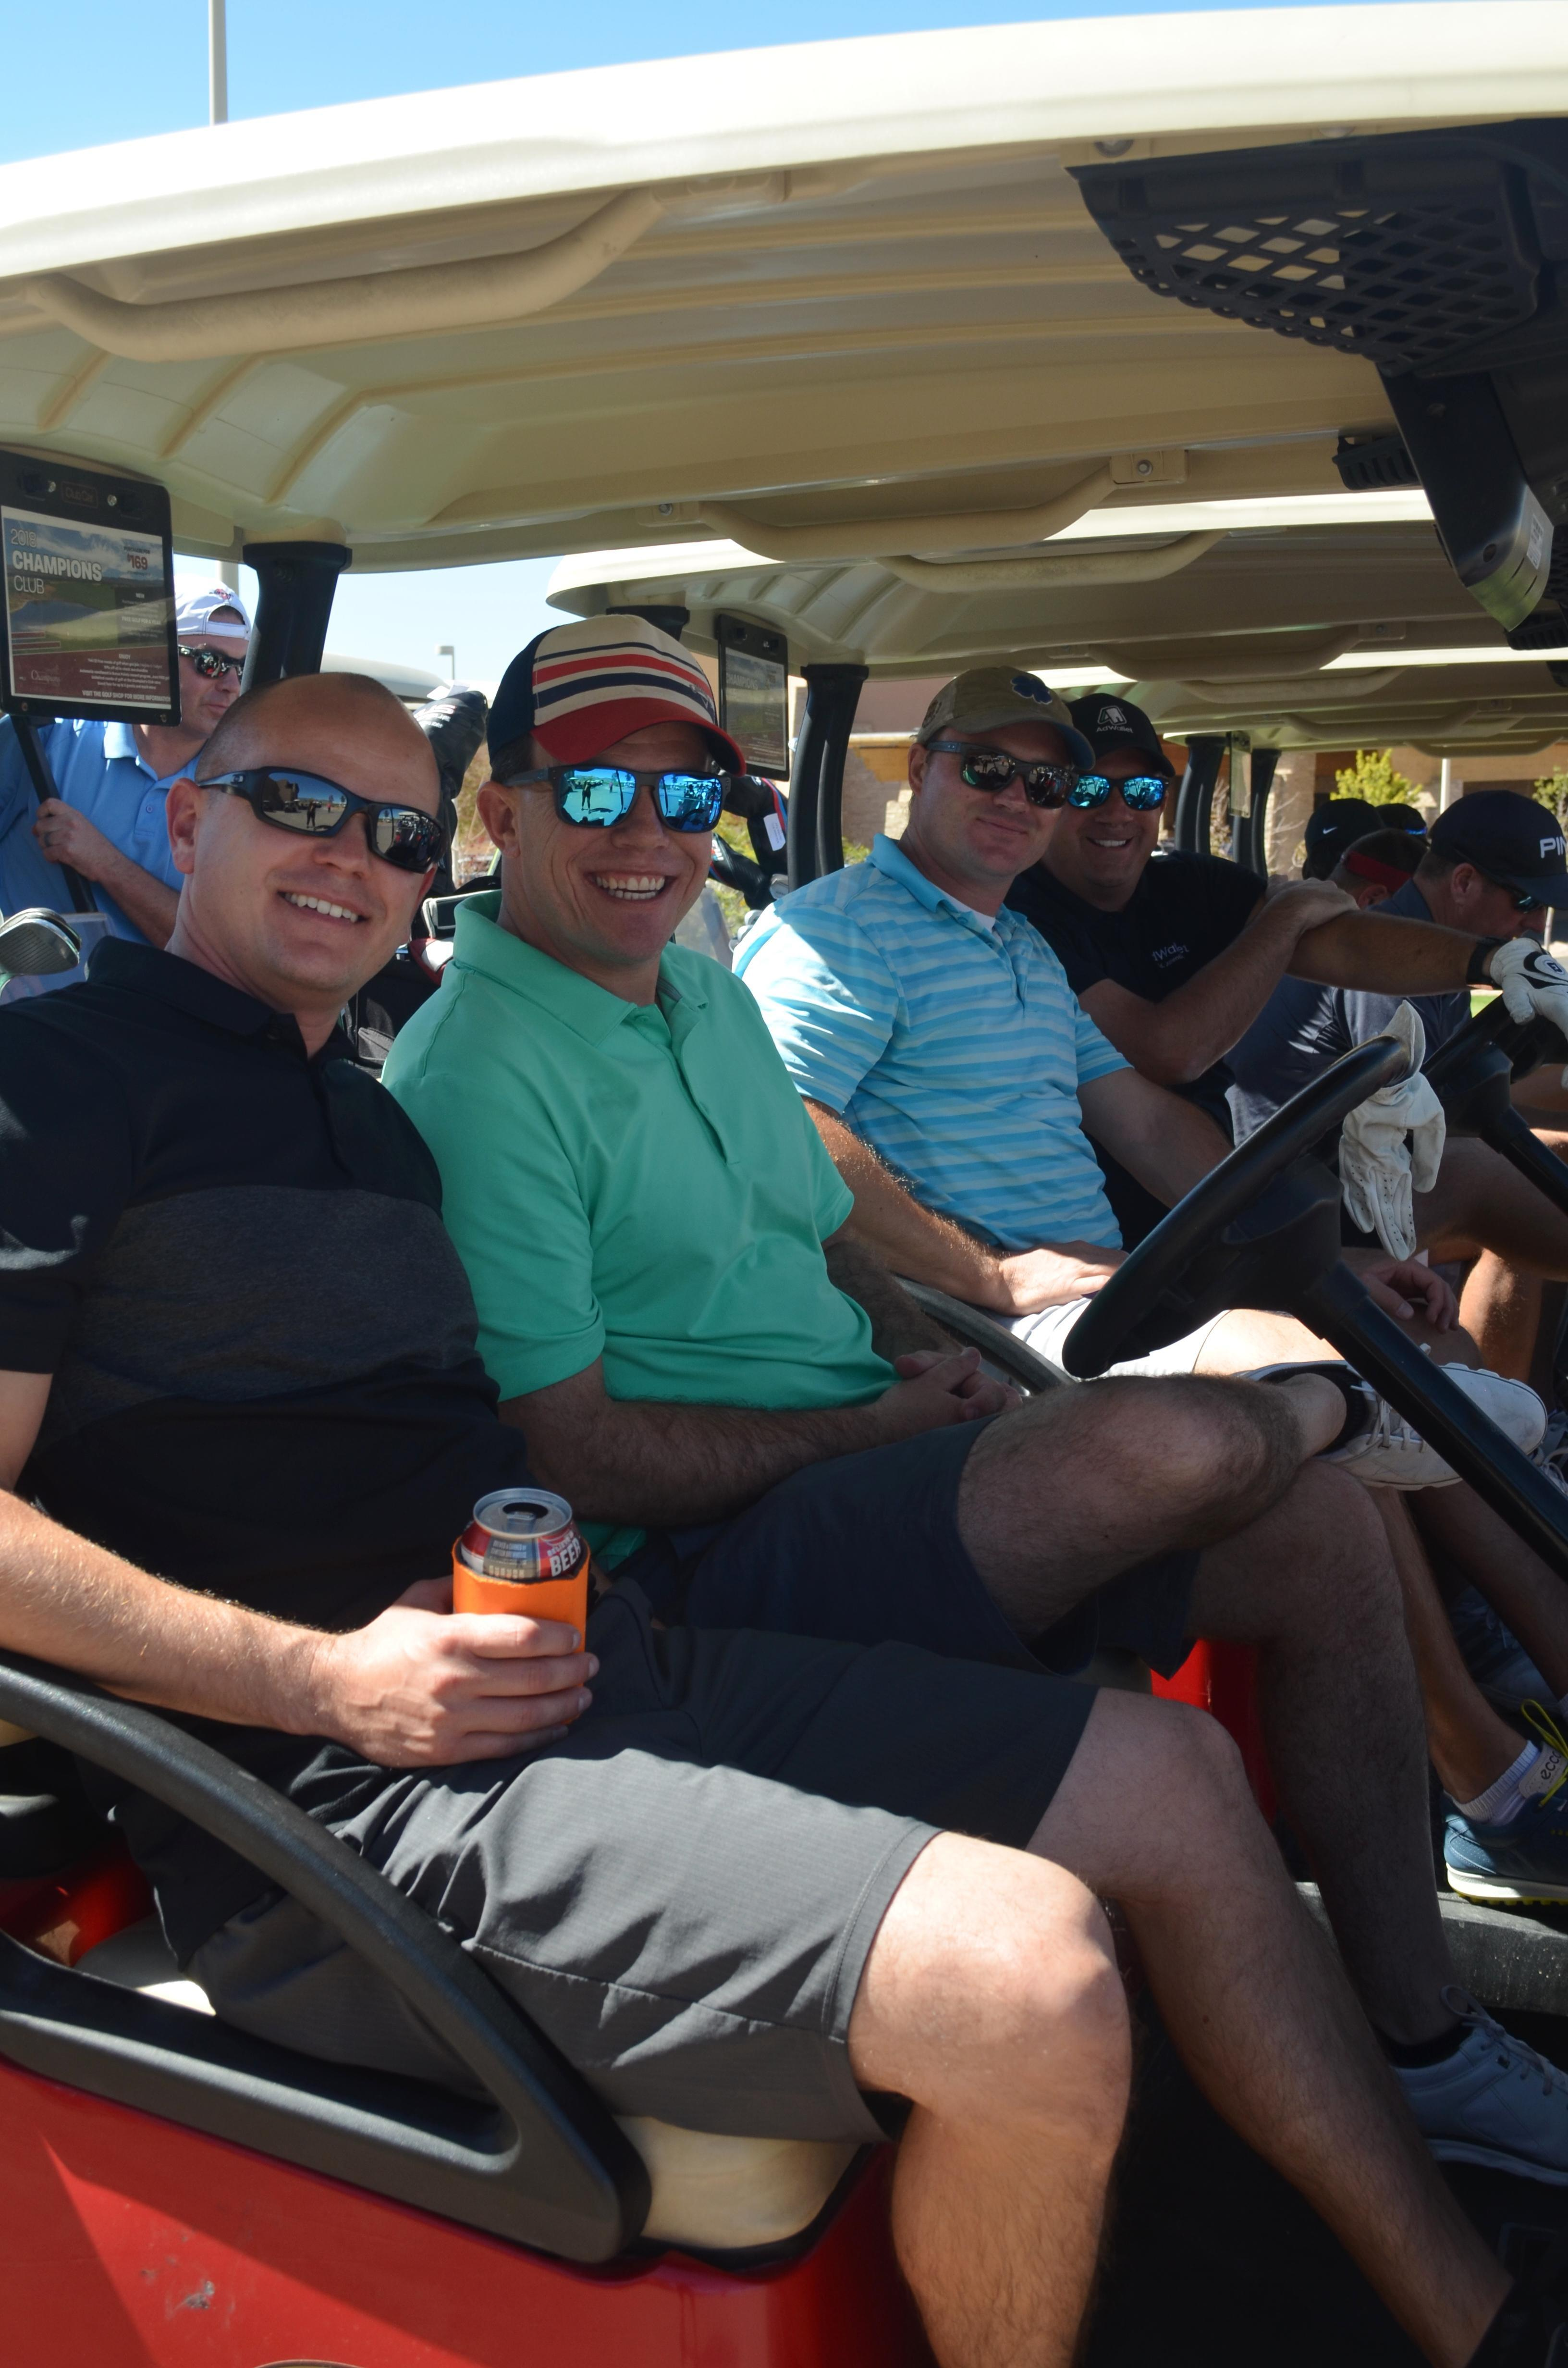 Golfers smile in golf cart